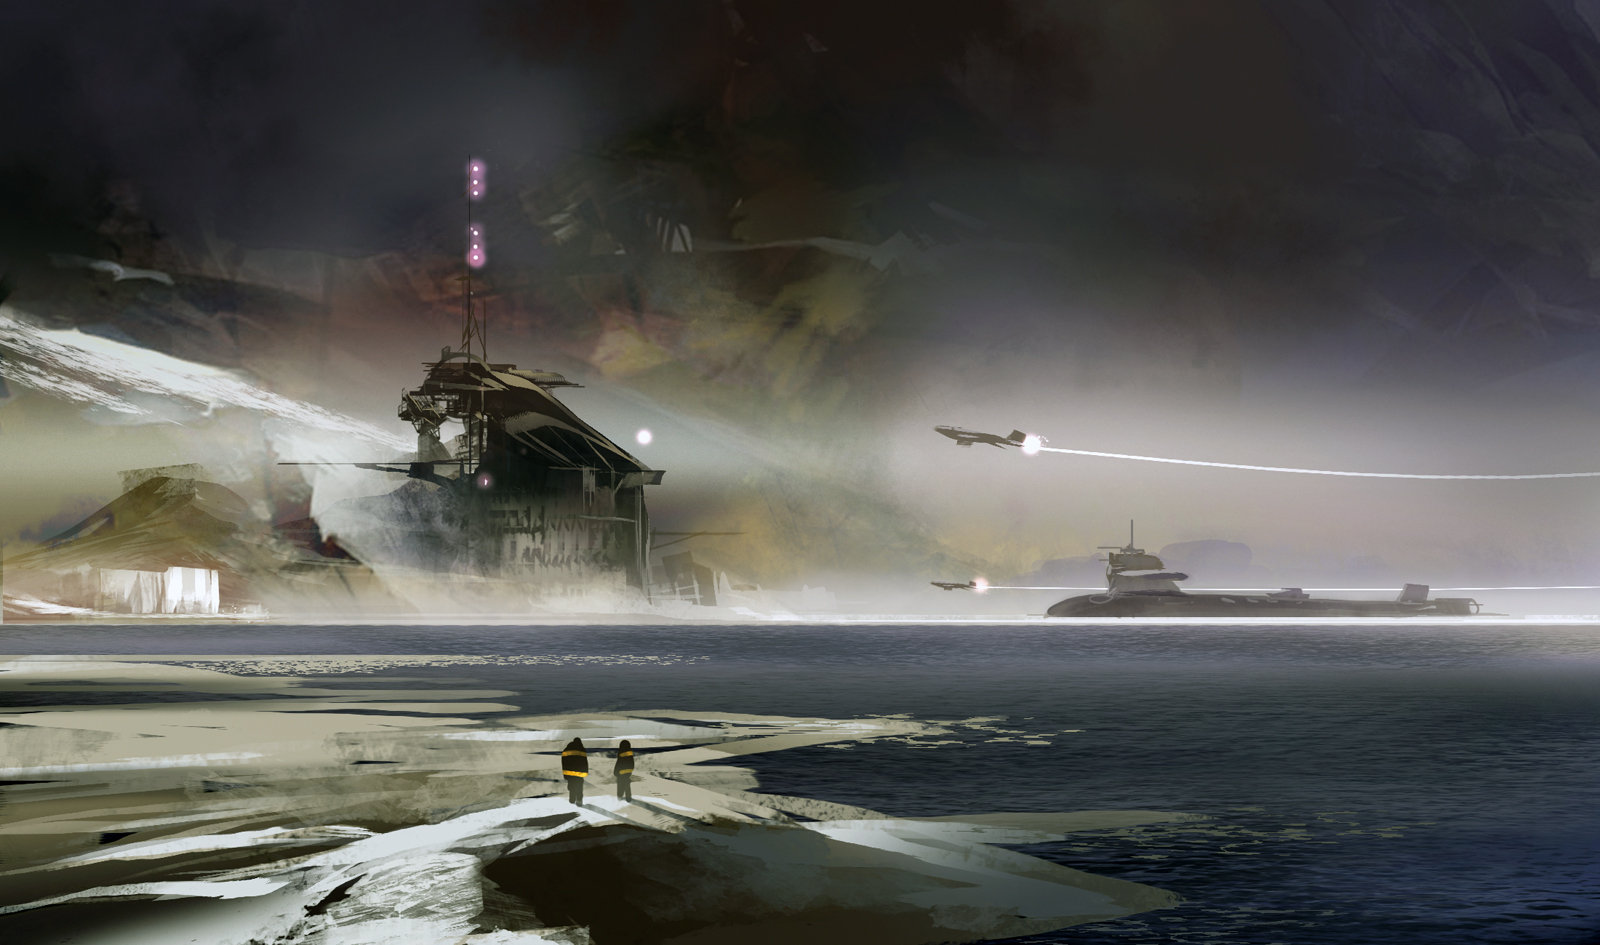 Sparth nicolas bouvier returning to the base 2006